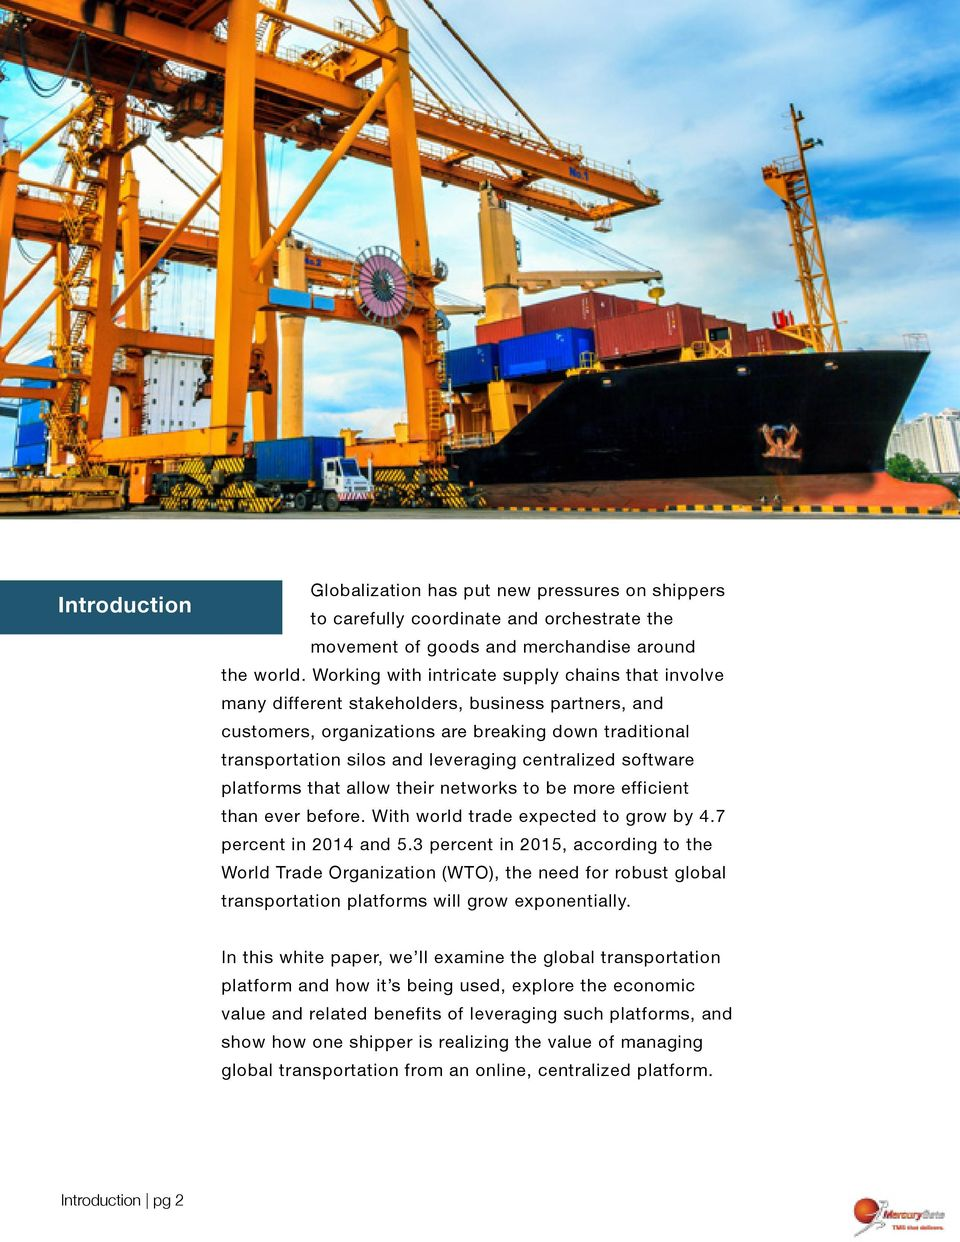 centralized software platforms that allow their networks to be more efficient than ever before. With world trade expected to grow by 4.7 percent in 2014 and 5.